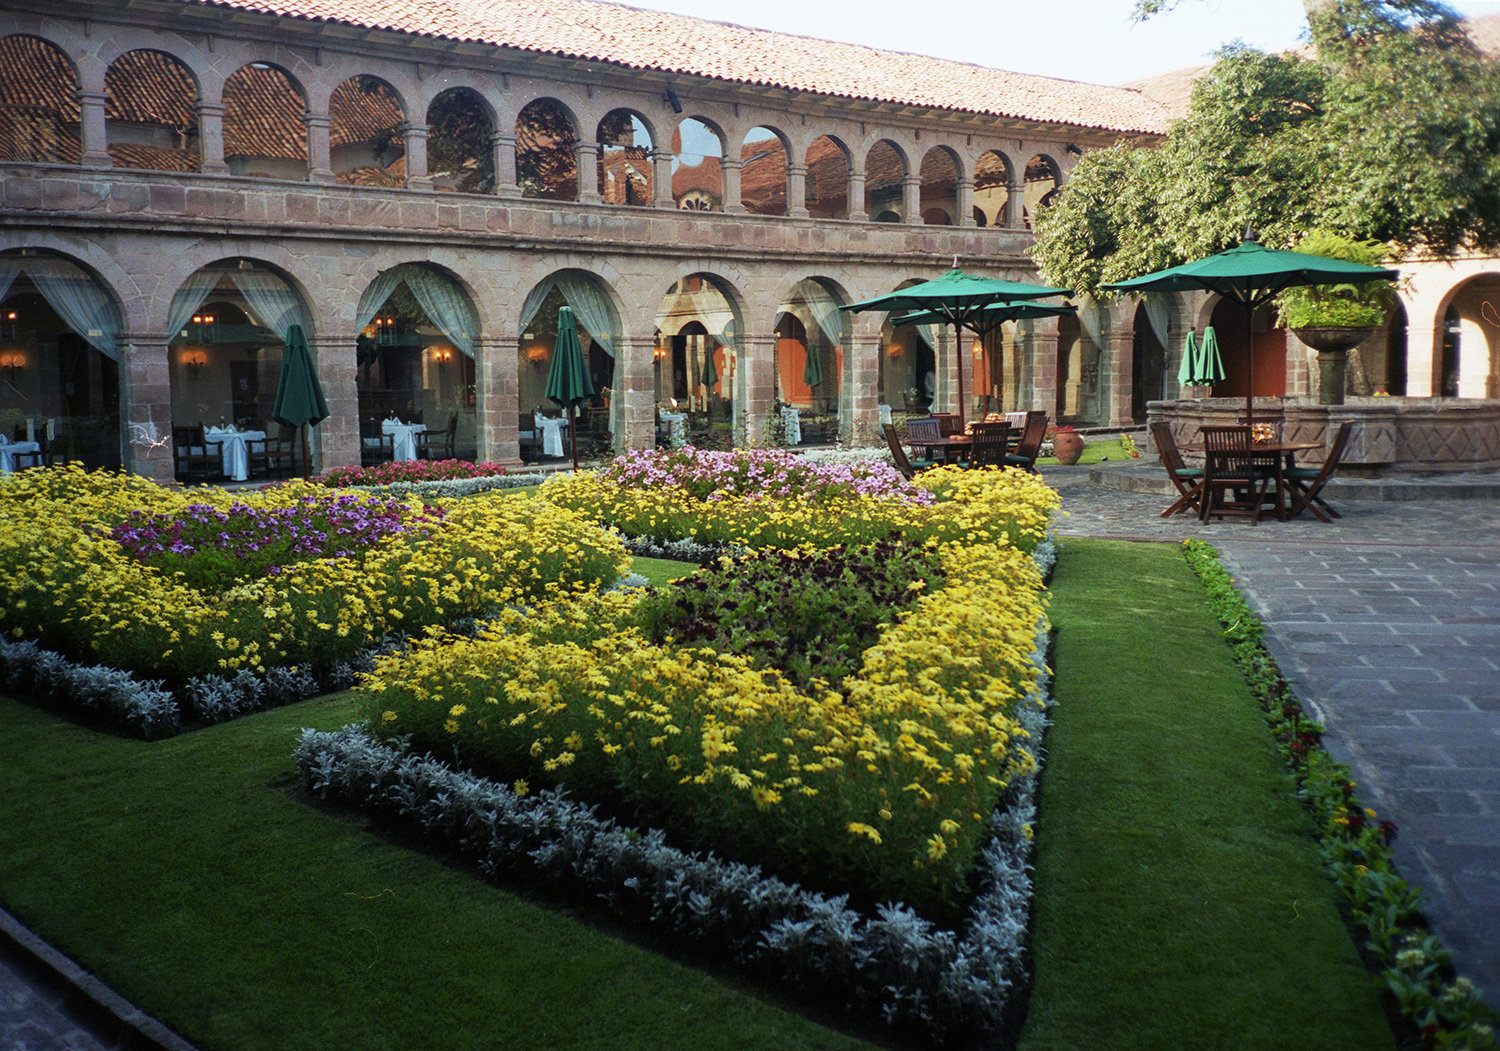 The Courtyard at the Monasterio